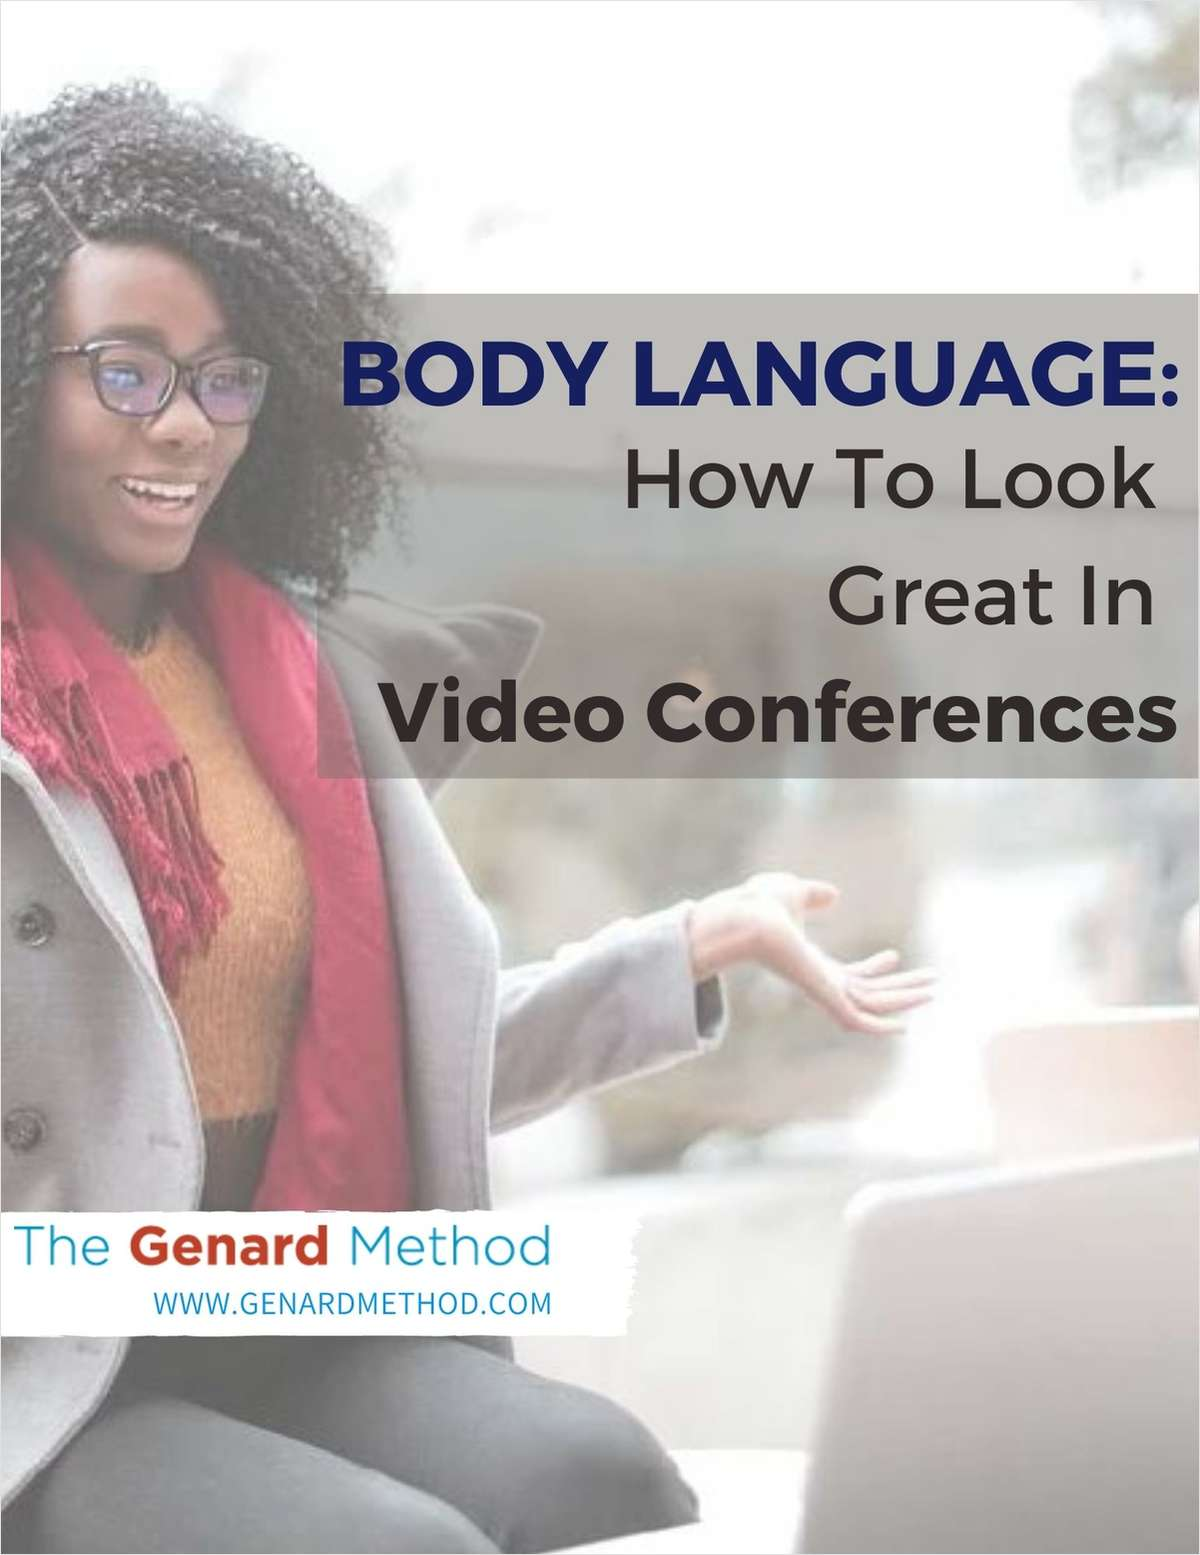 Body Language: How to Look Great in Video Conferences